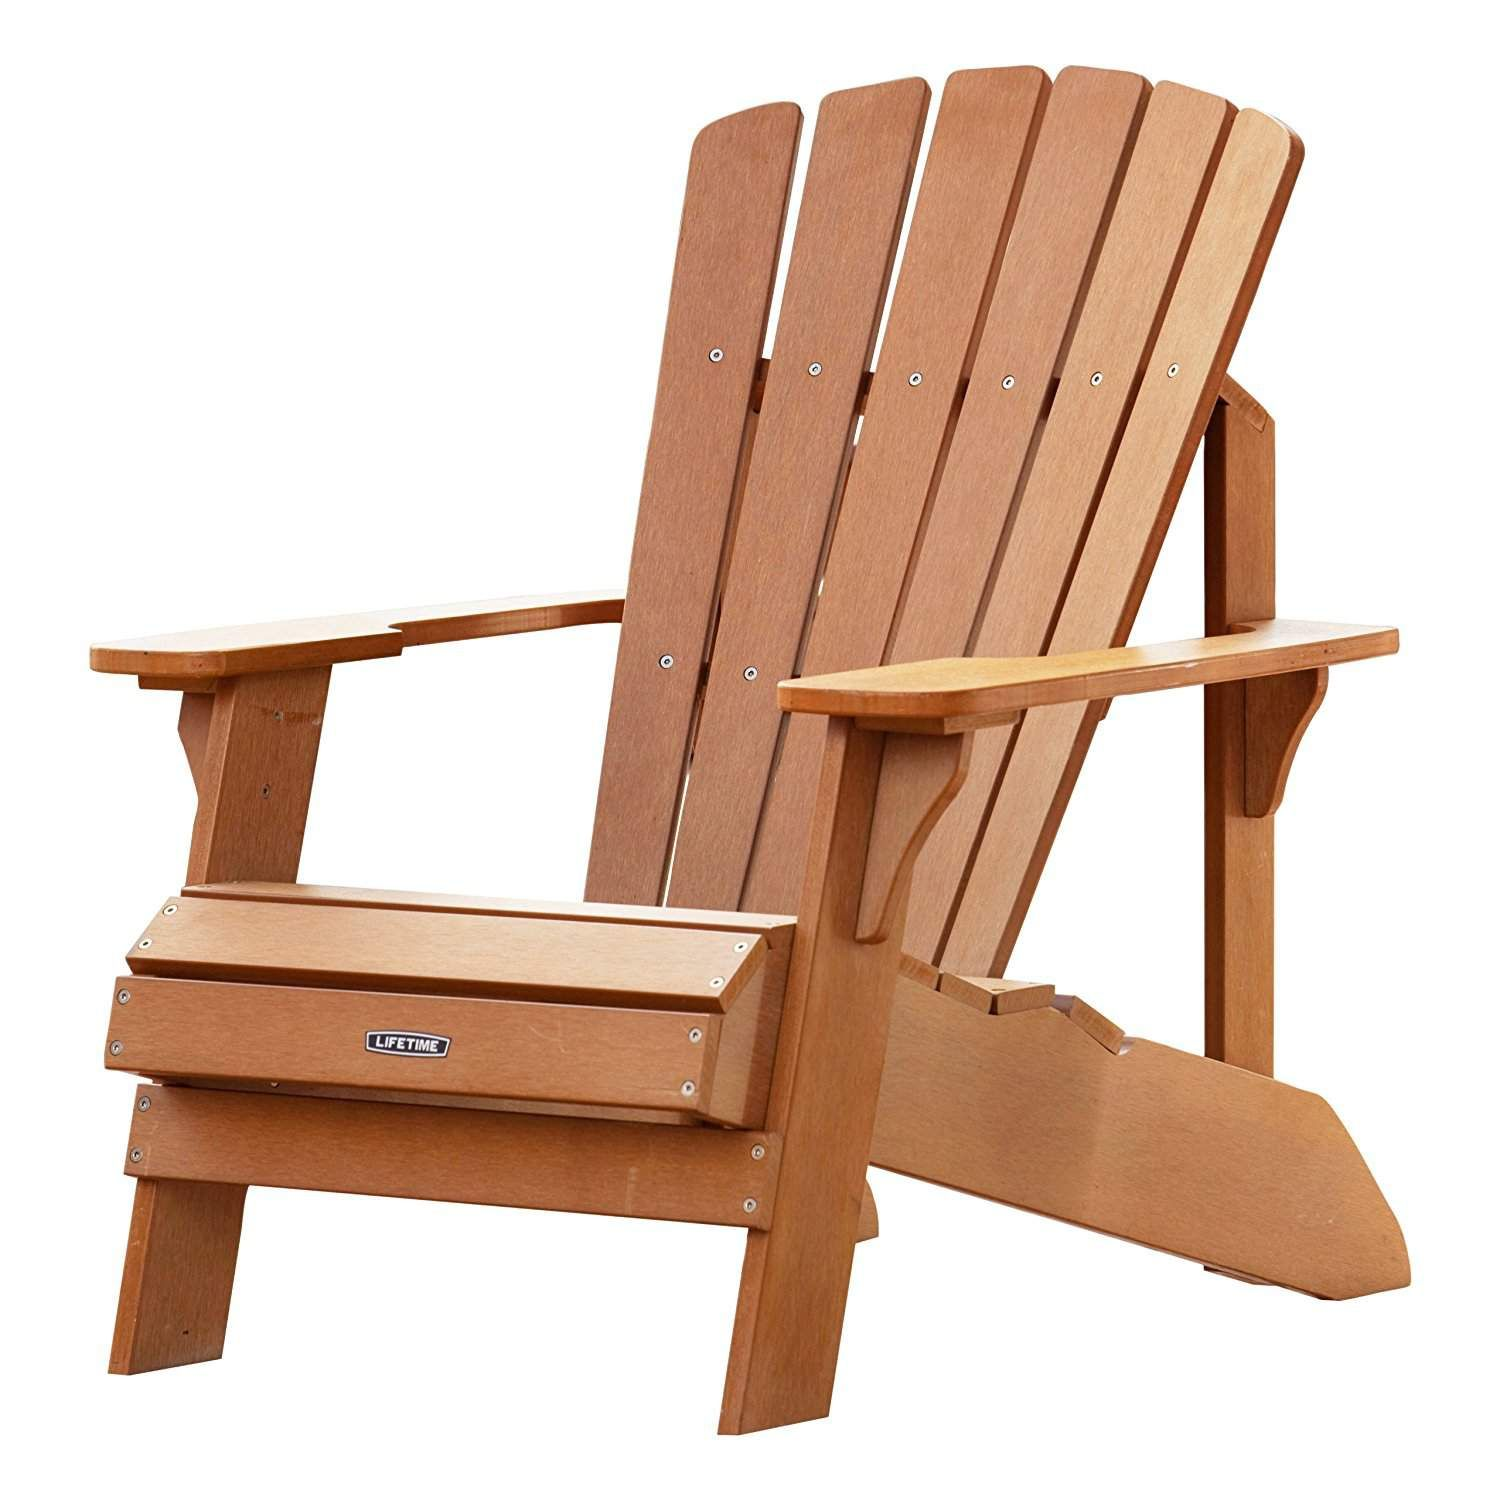 10 Best Plastic Adirondack Chairs Your Buyer's Guide